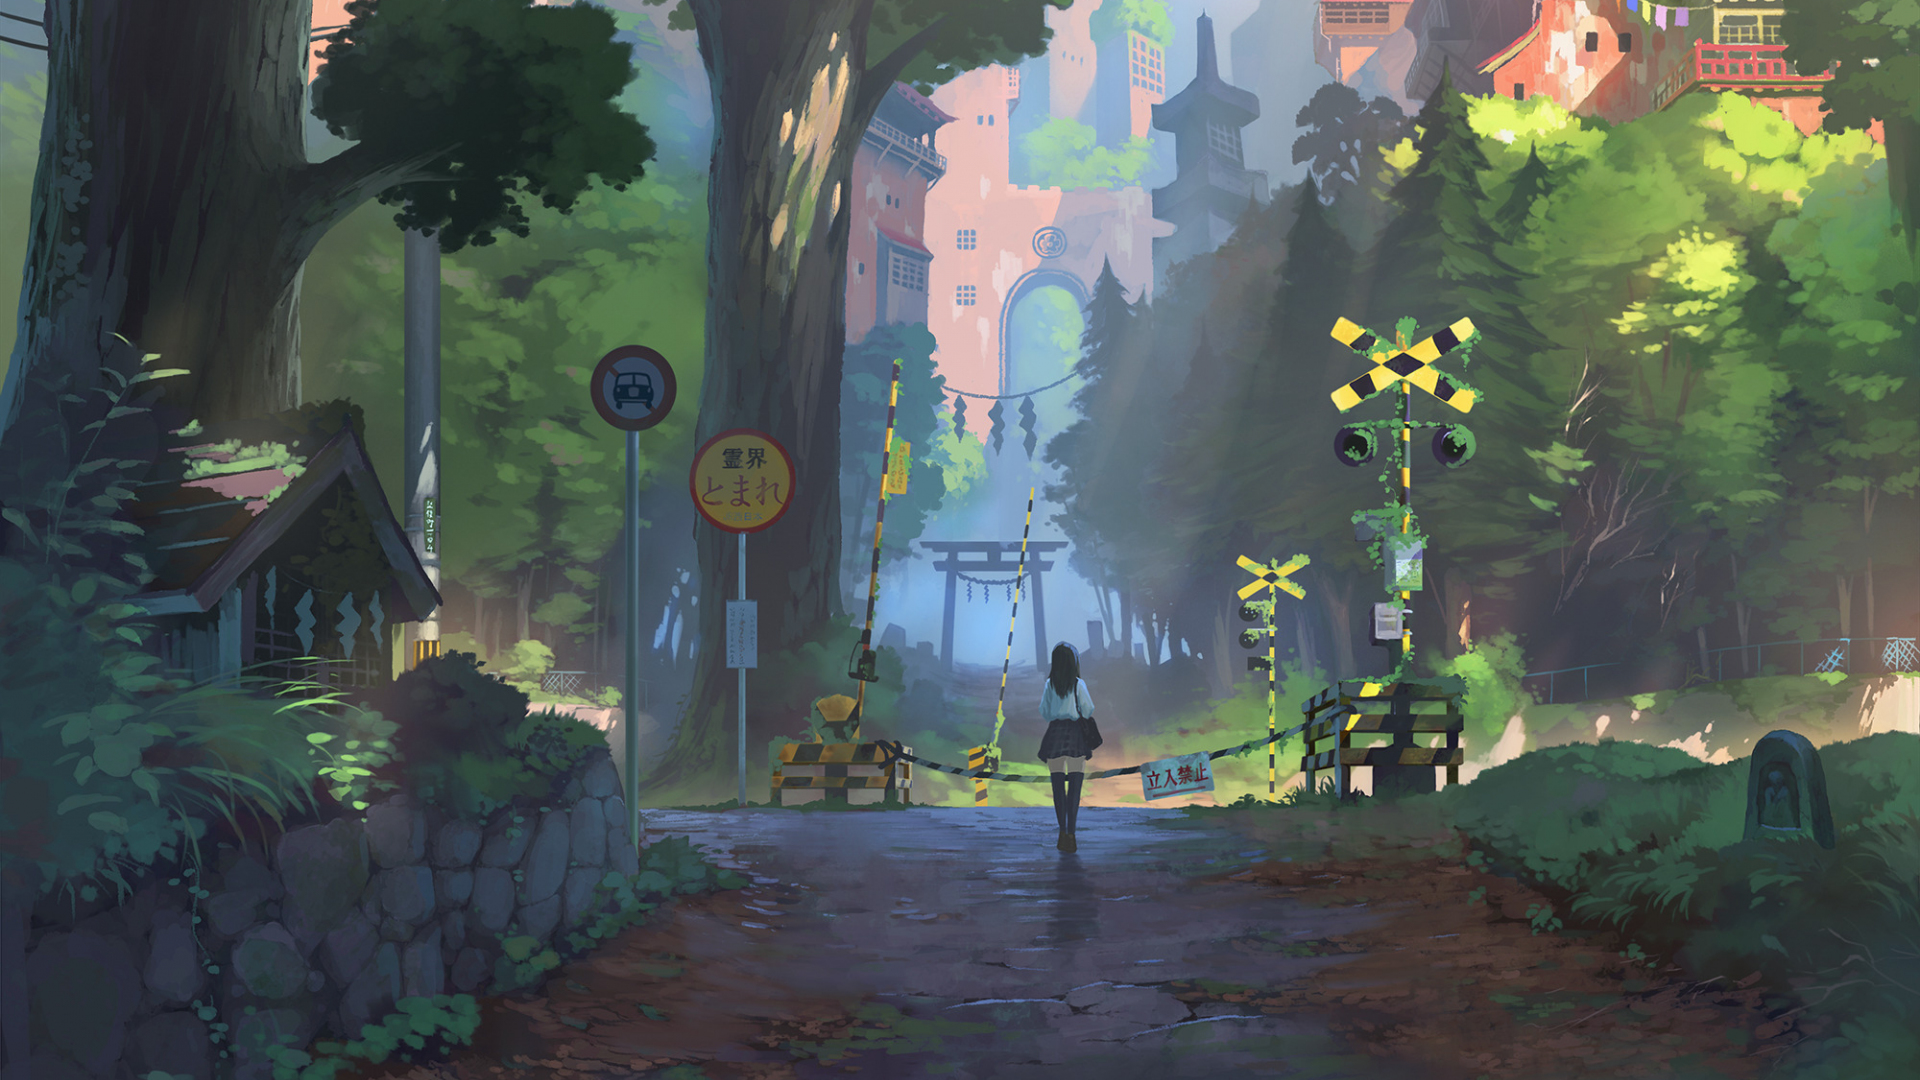 Download 1920x1080 Wallpaper Anime Girl Railway Crossing Landscape Full Hd Hdtv Fhd 1080p 1920x1080 Hd Image Background 1026